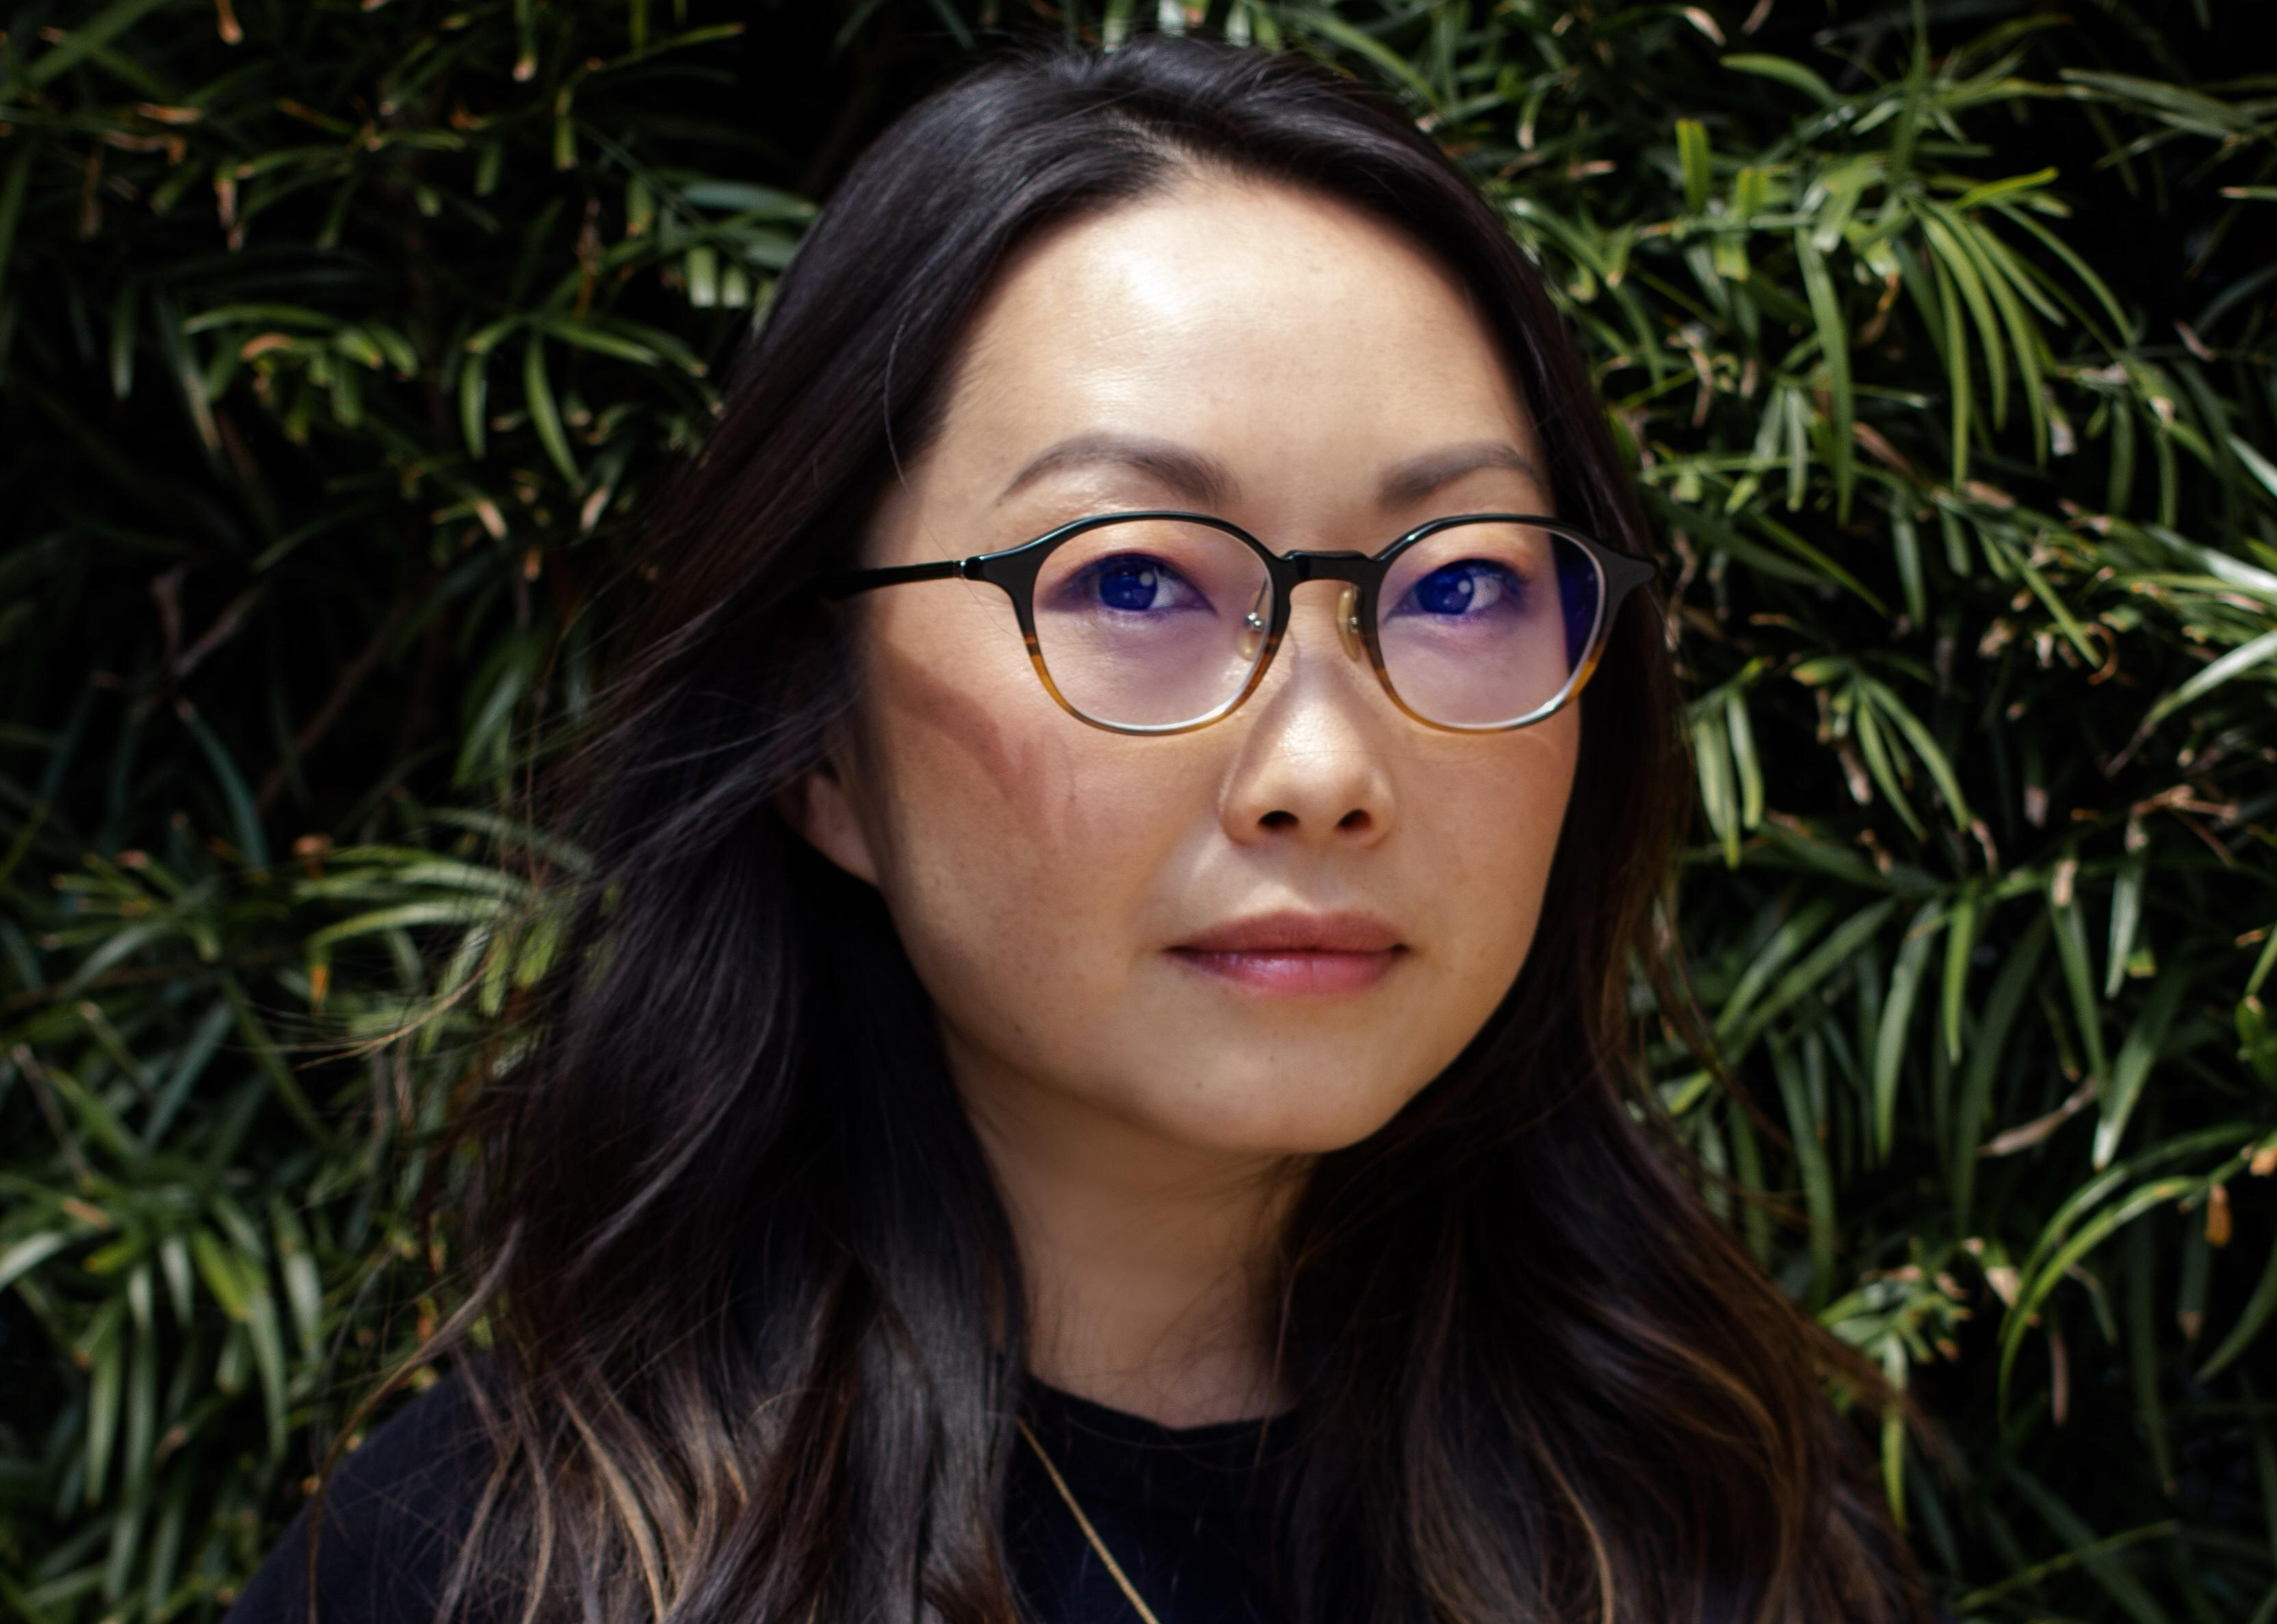 The Farewell's Lulu Wang: 'I would love it if white men were asked the same questions as me'